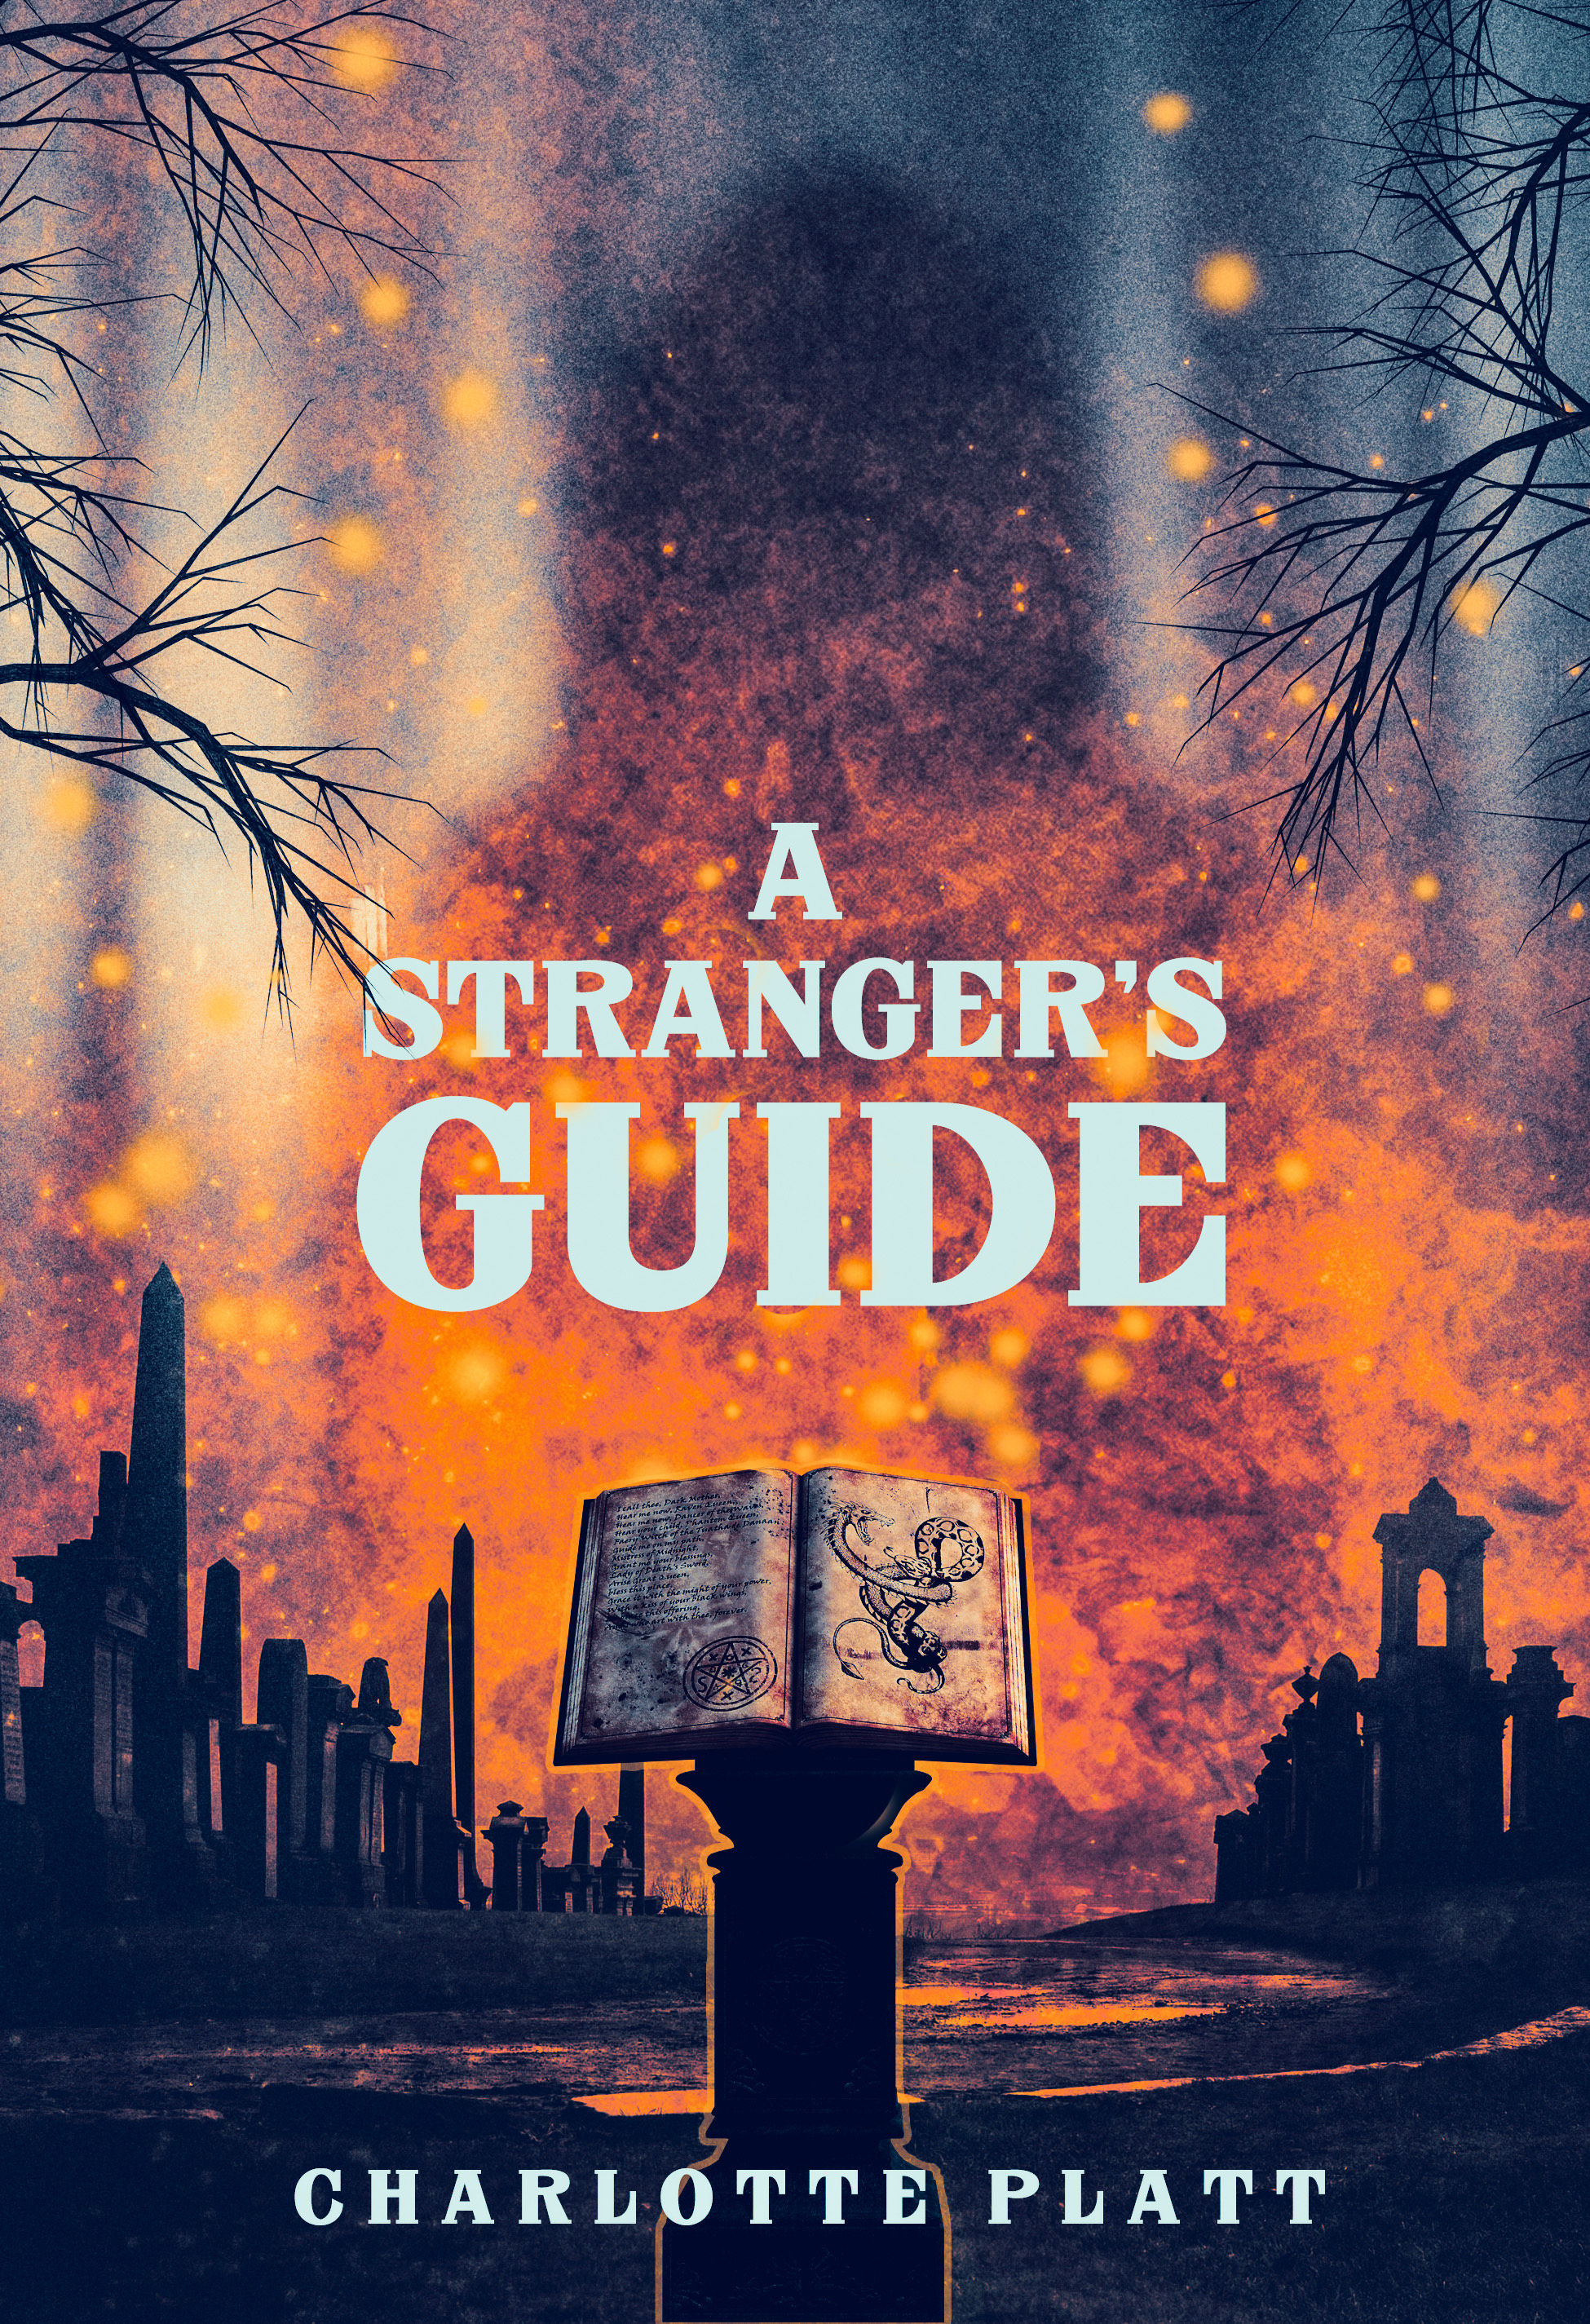 A stranger's guide   digital